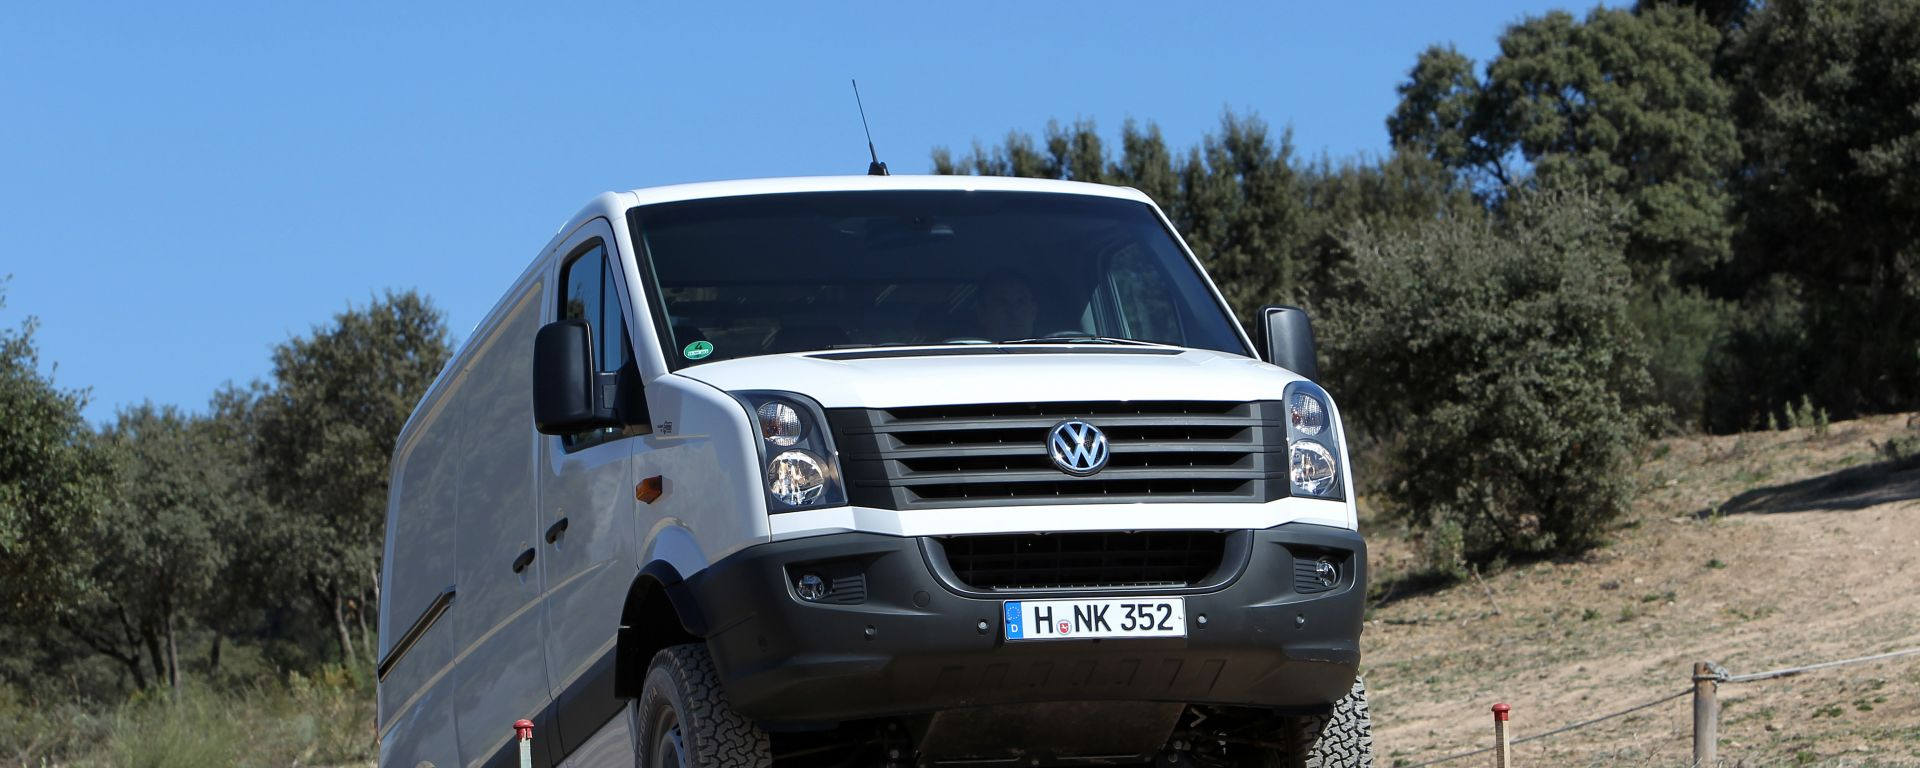 Volkswagen Crafter 4Motion by Achleitner